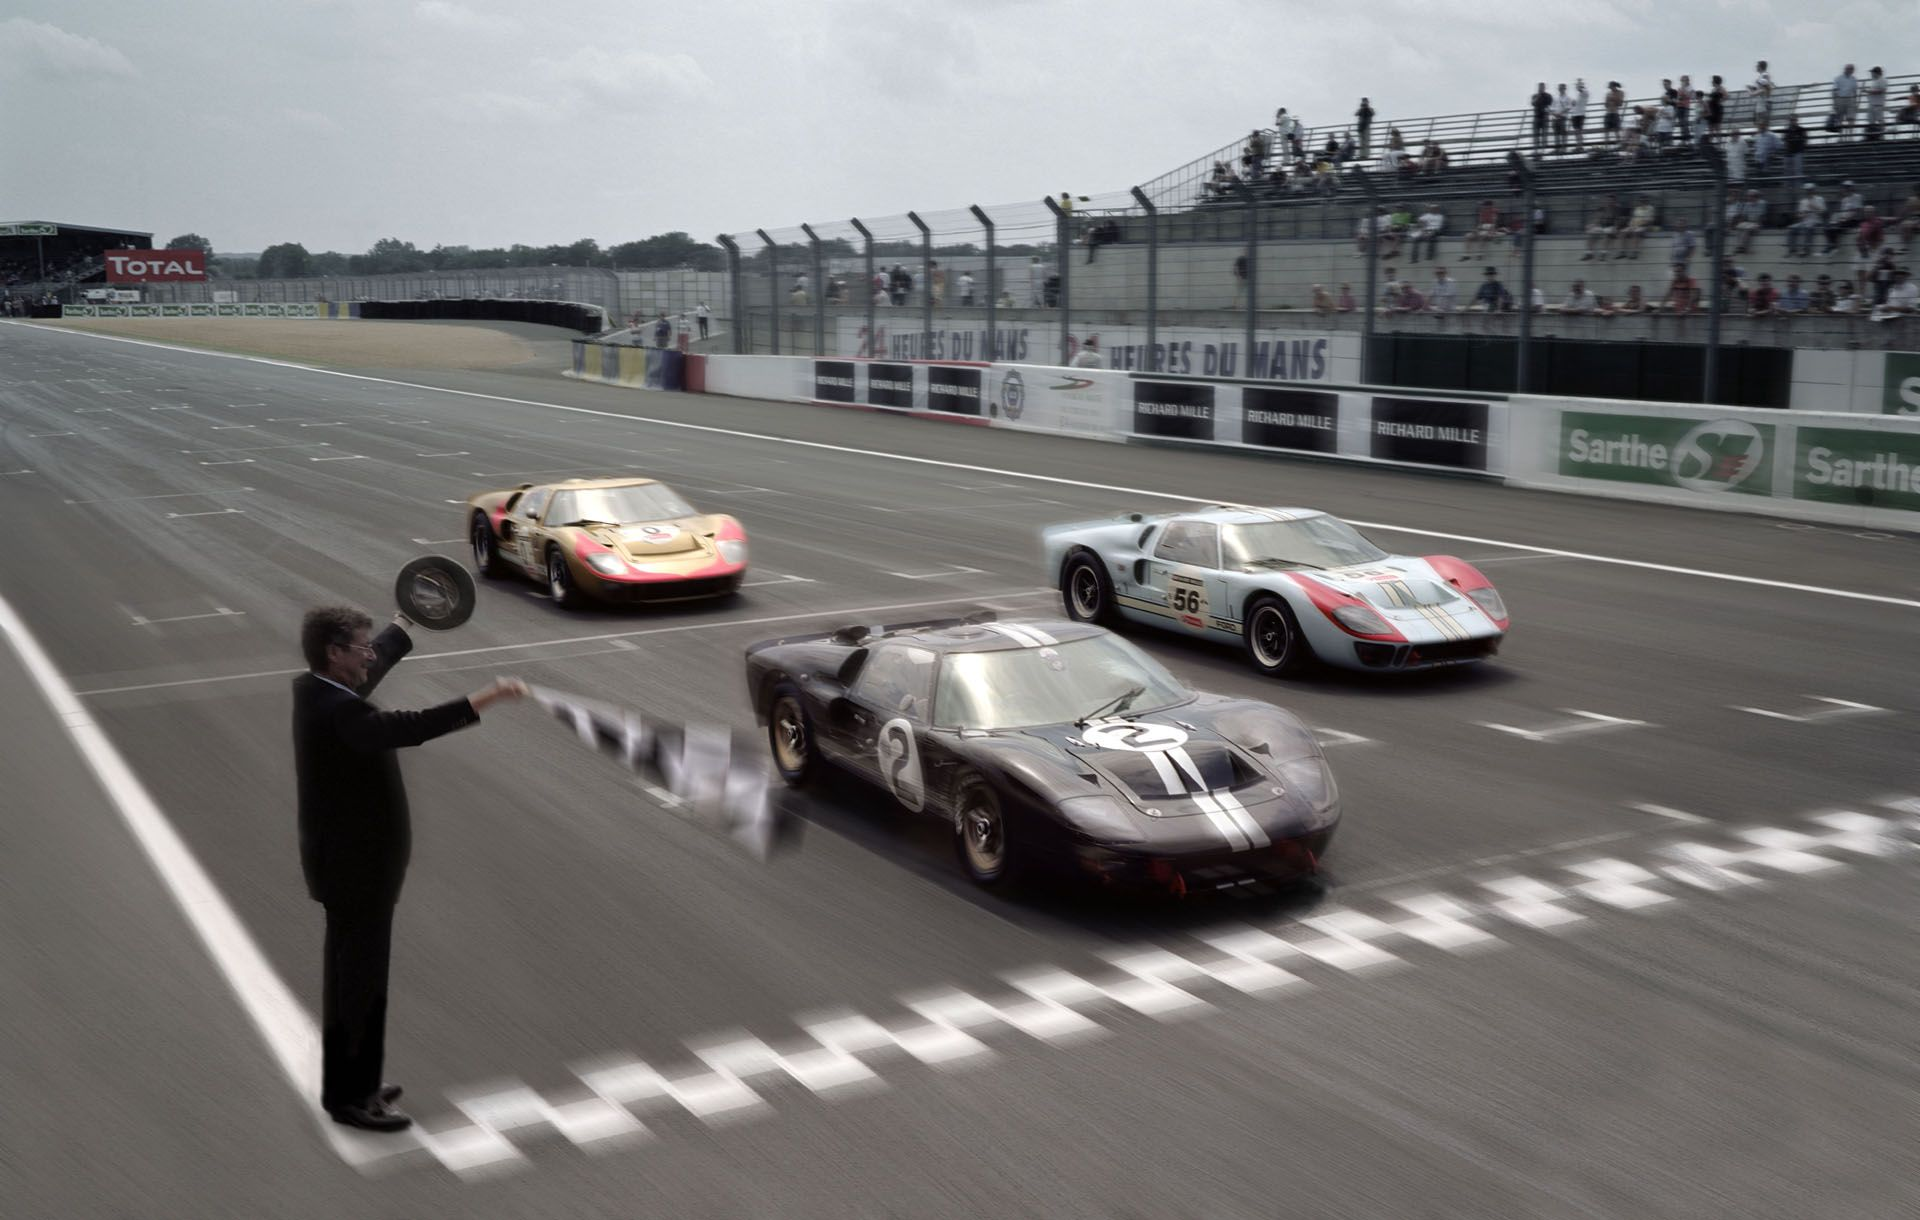 Ford Gt40 Le Mans 1966 Photo Gallery 7 10 Ford Gt40 Ford Gt Ford